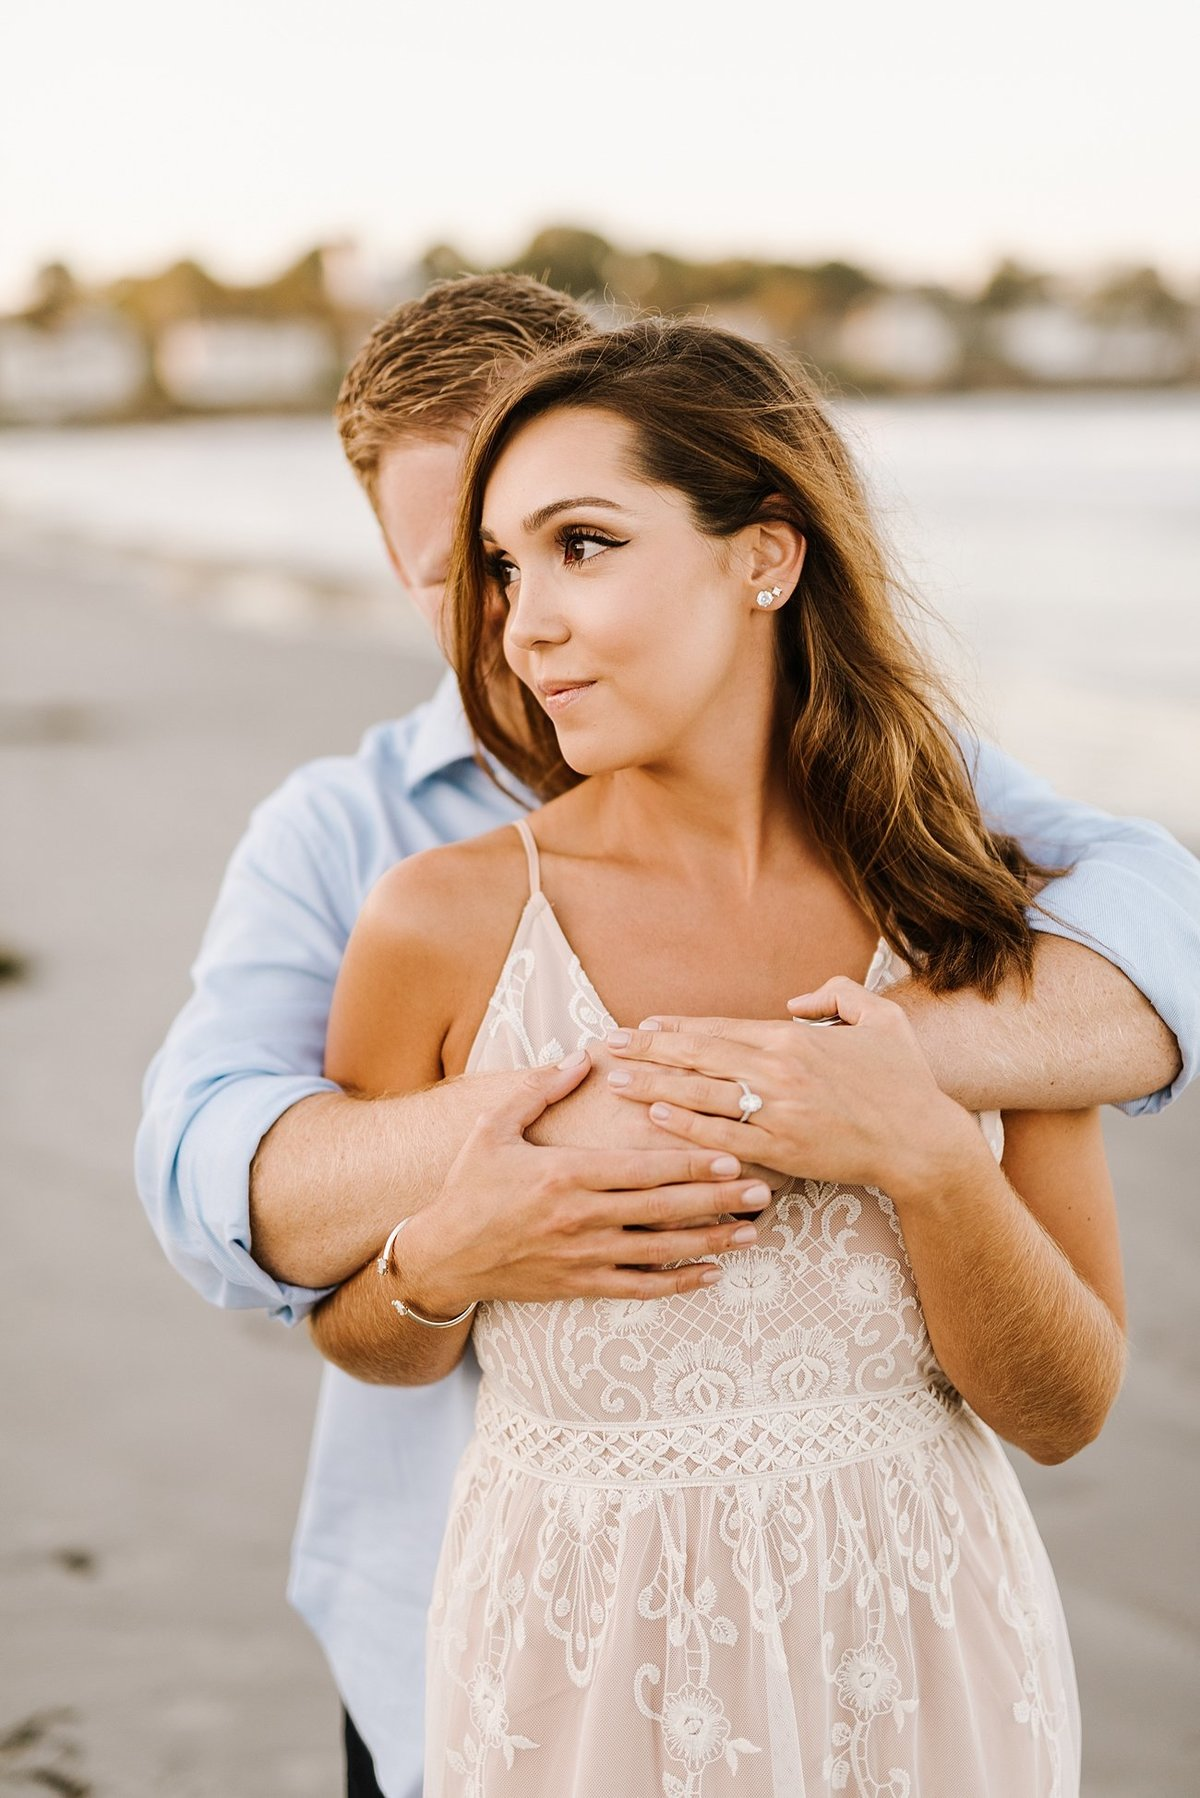 nahant-beach-engagement-session-boston-wedding-photographer-photo_0010